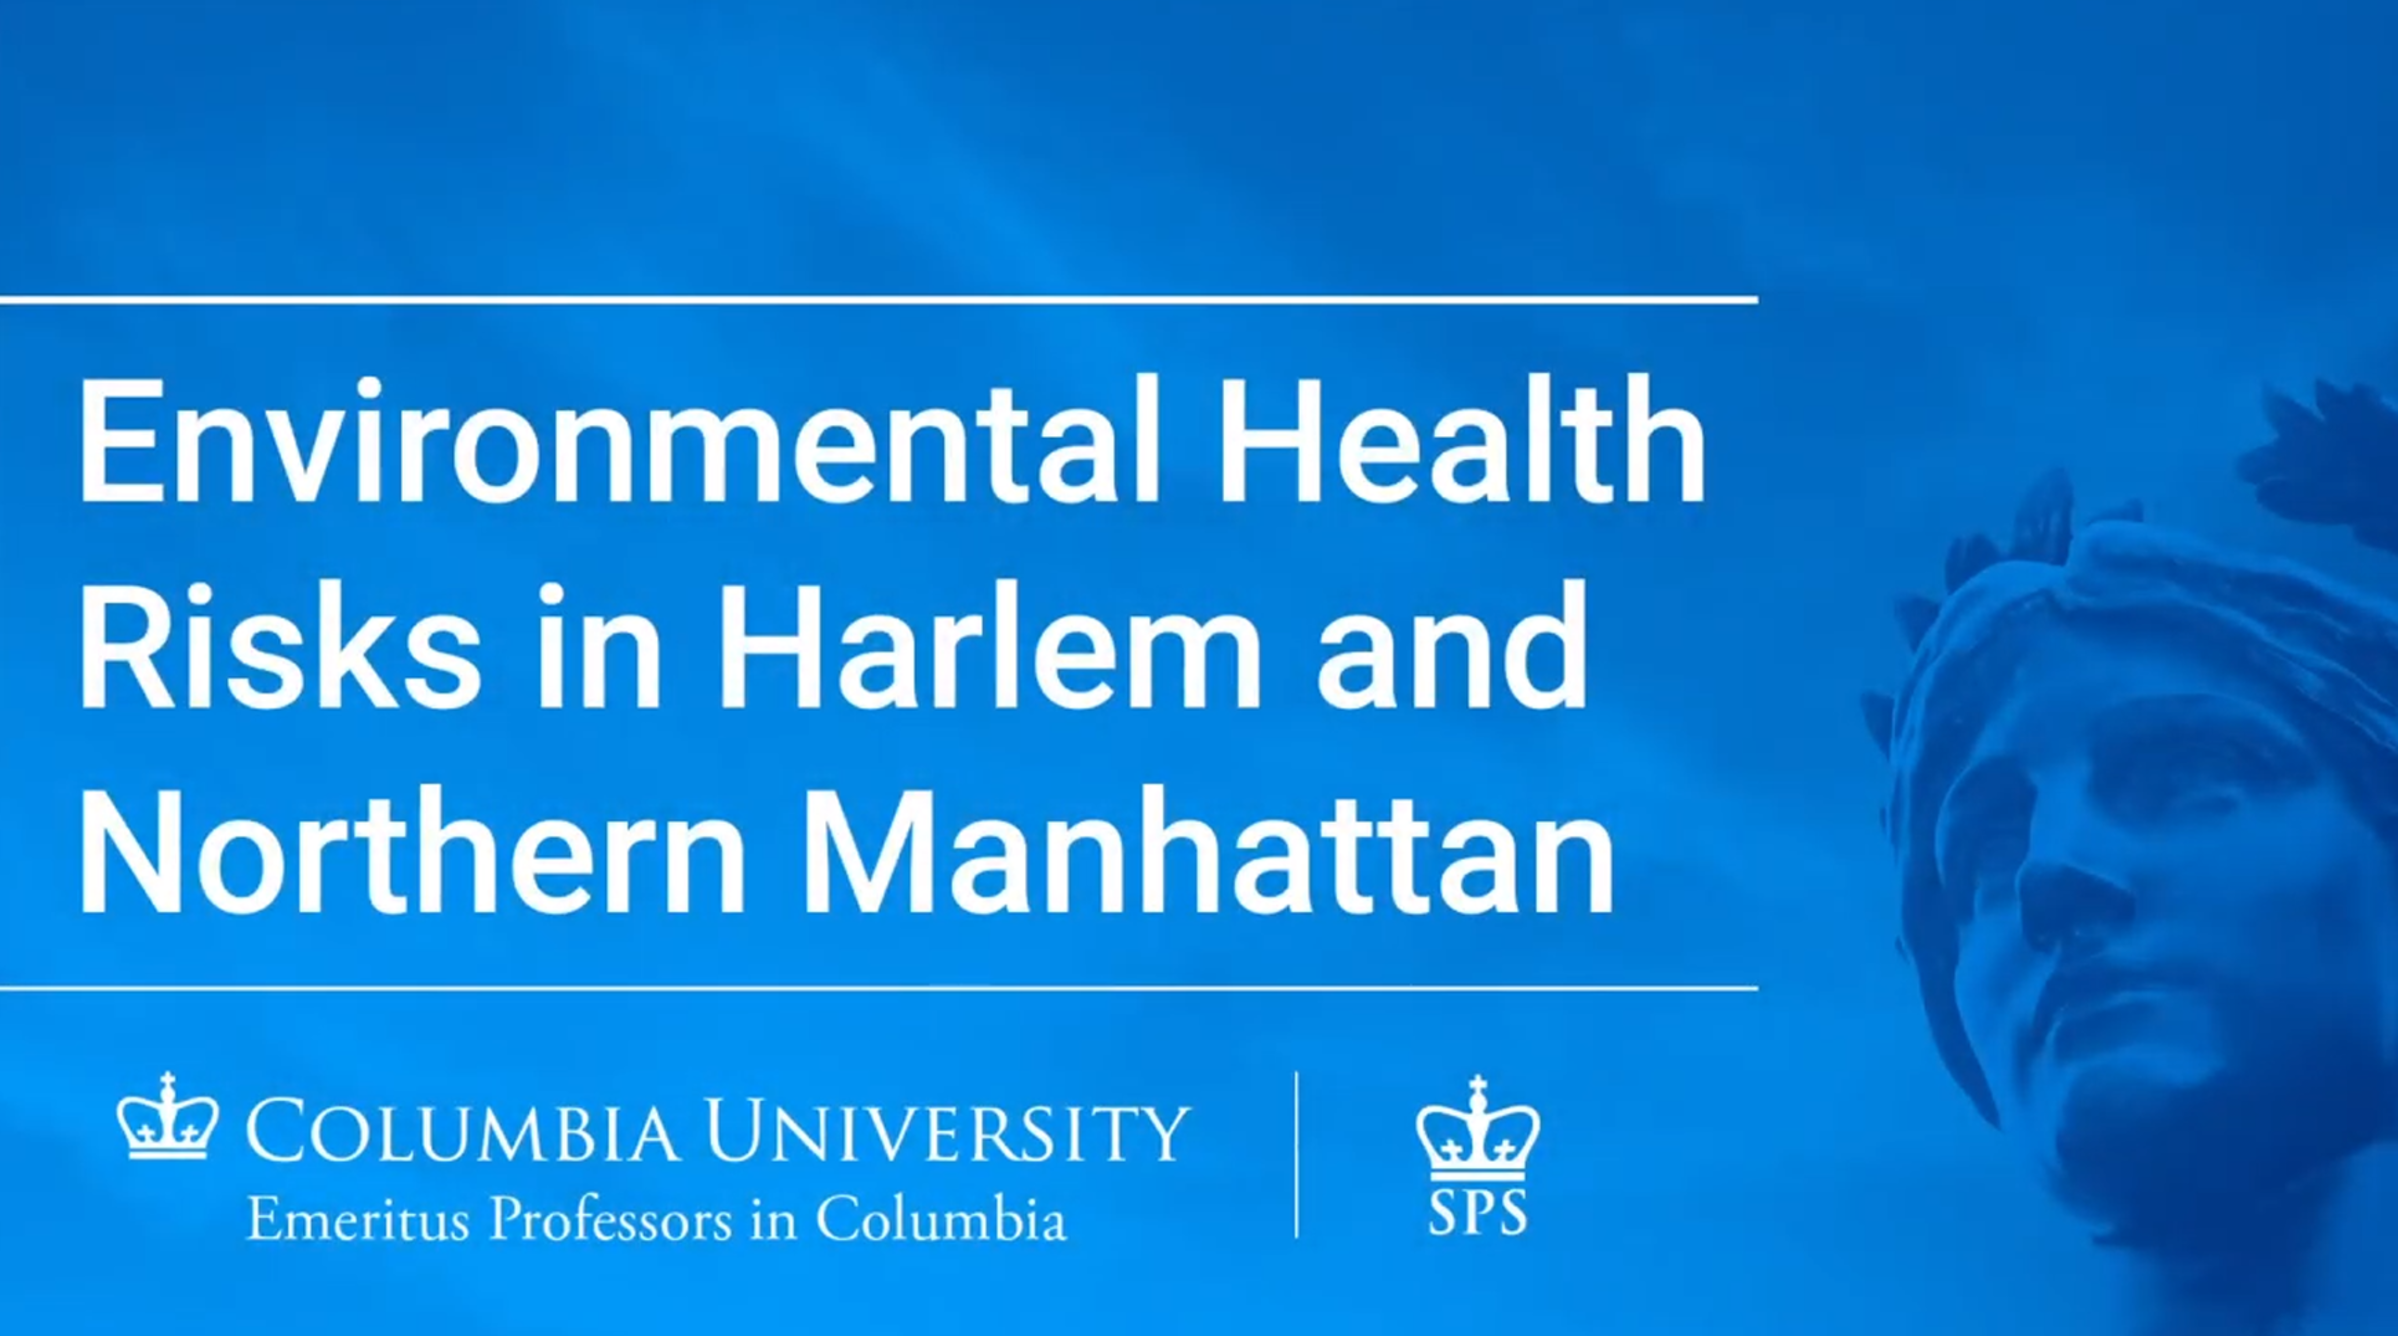 Environmental Health Risks in Harlem and Northern Manhattan